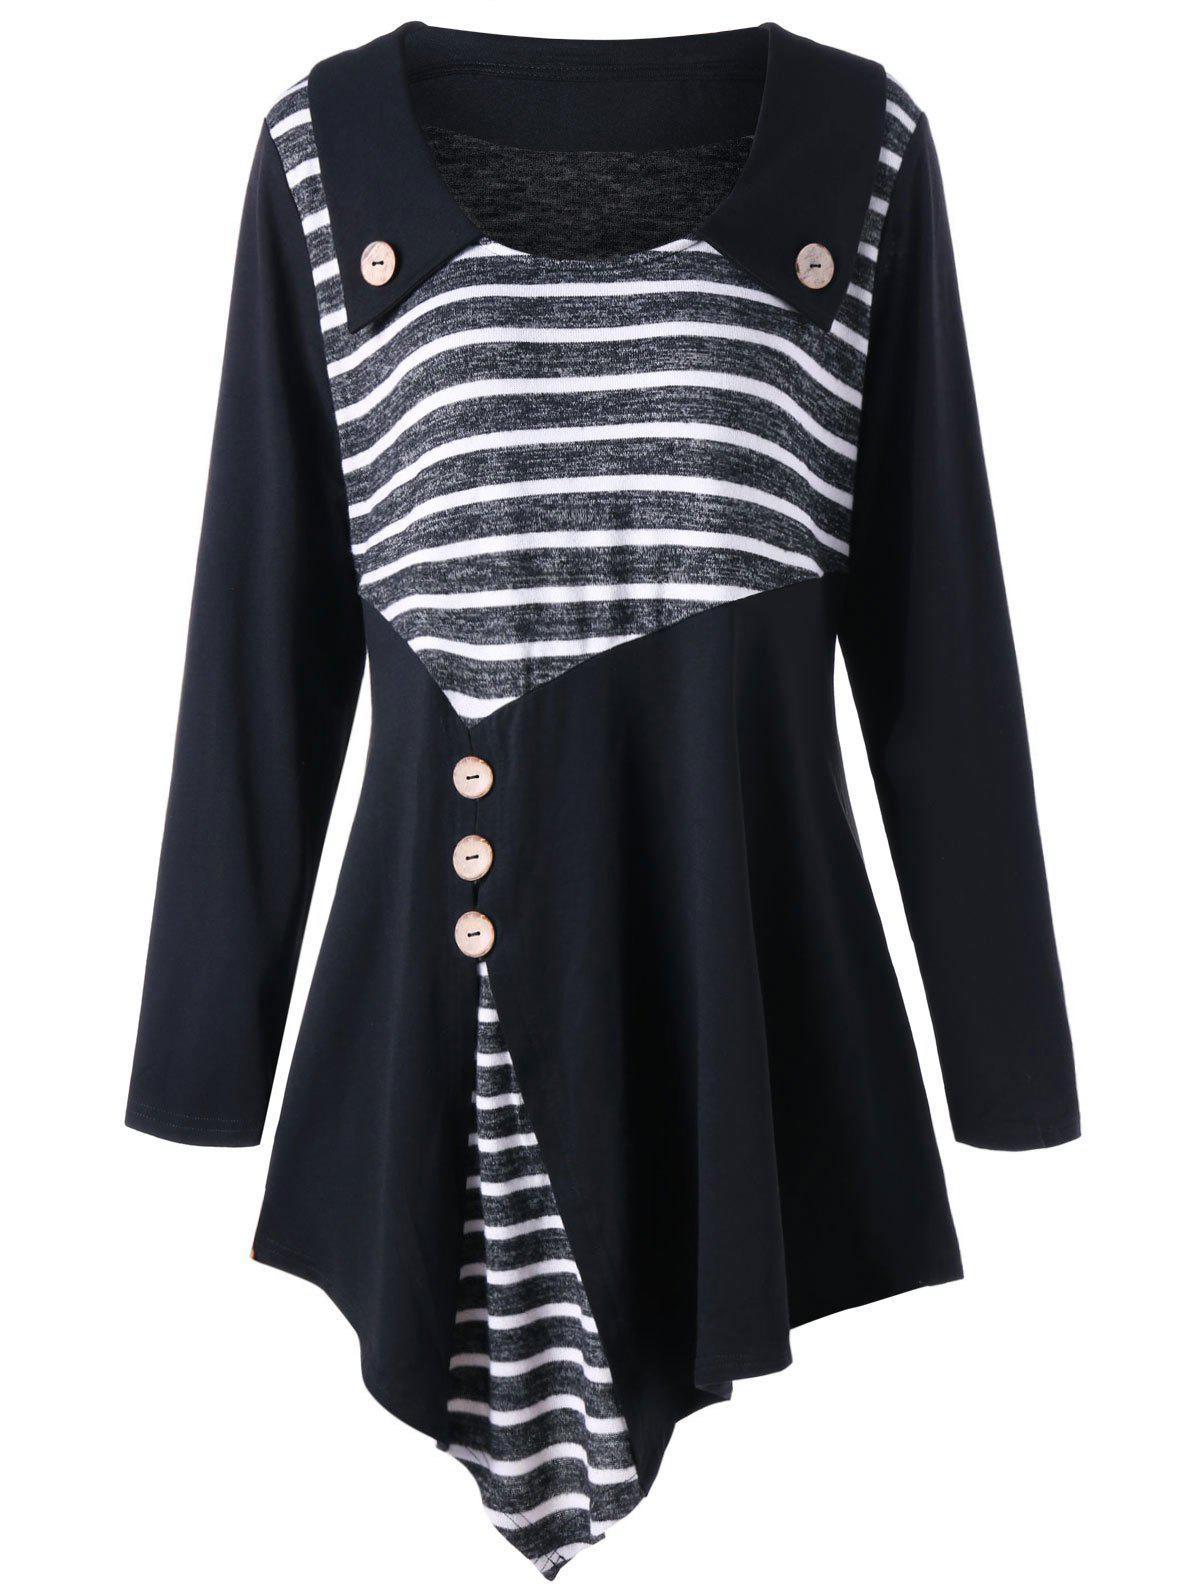 Plus Size Striped Asymmetric Tunic Top plus size print tunic asymmetric top